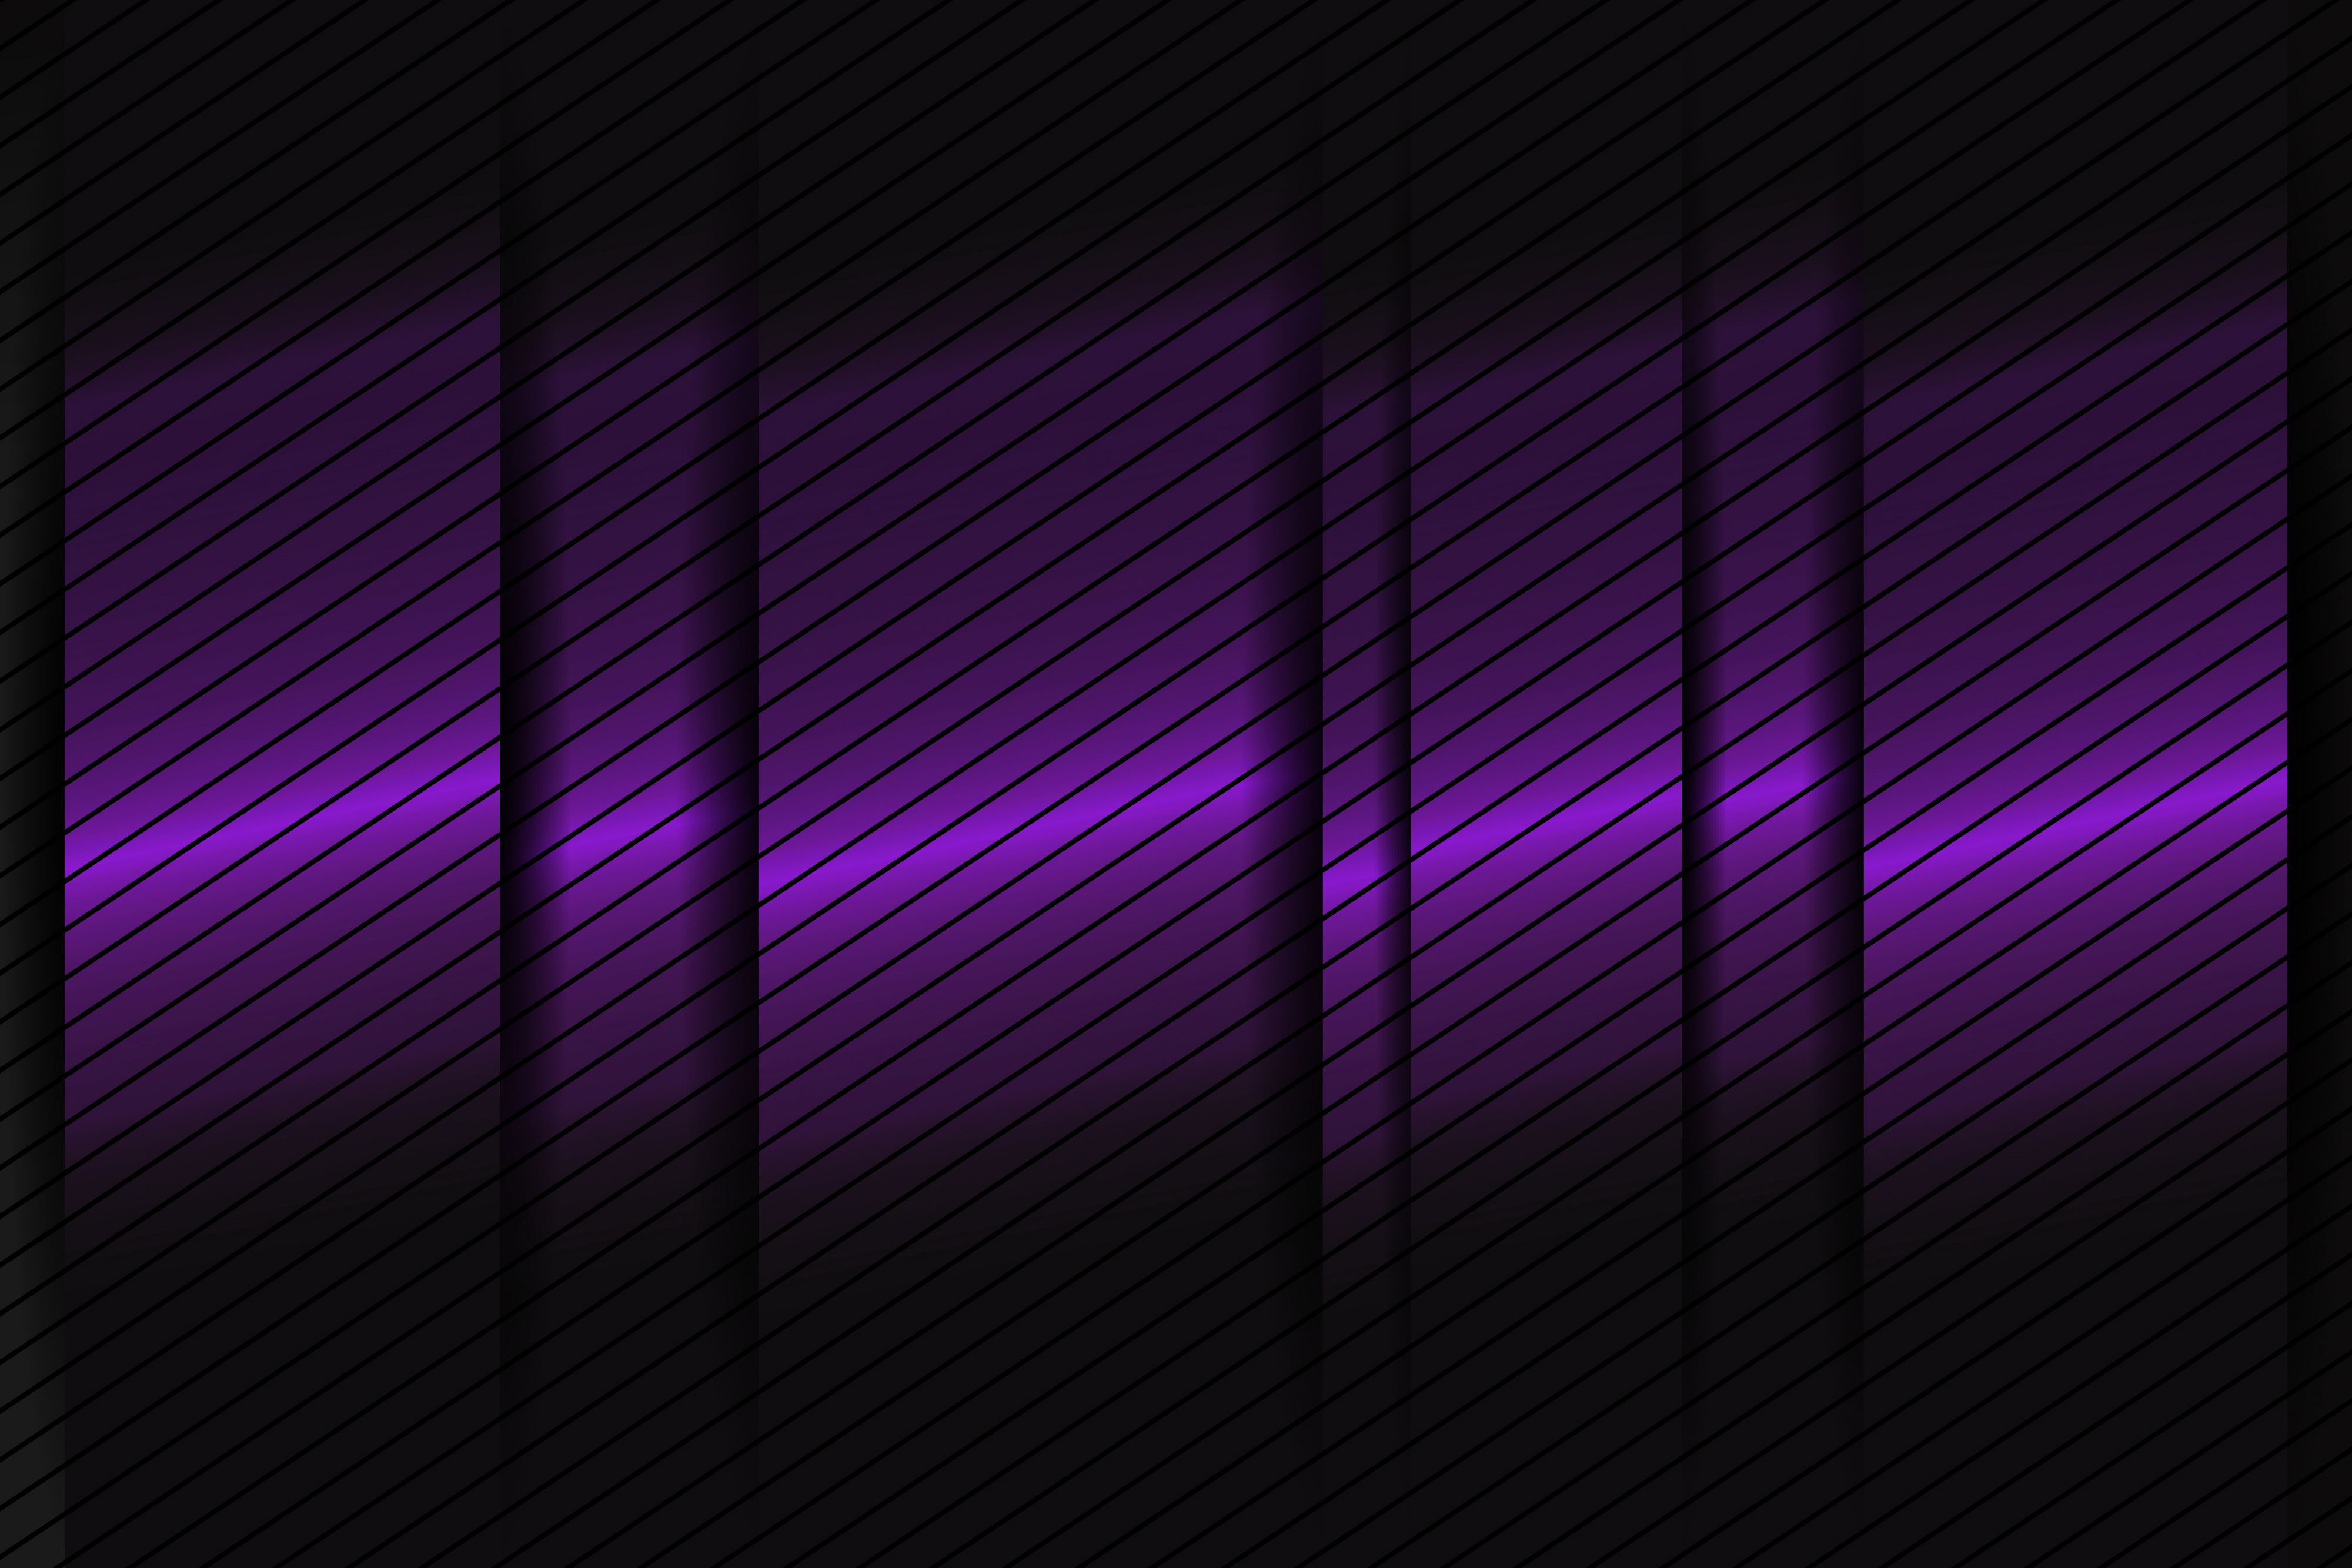 70900 download wallpaper Lines, Textures, Abstract, Violet, Texture, Purple screensavers and pictures for free